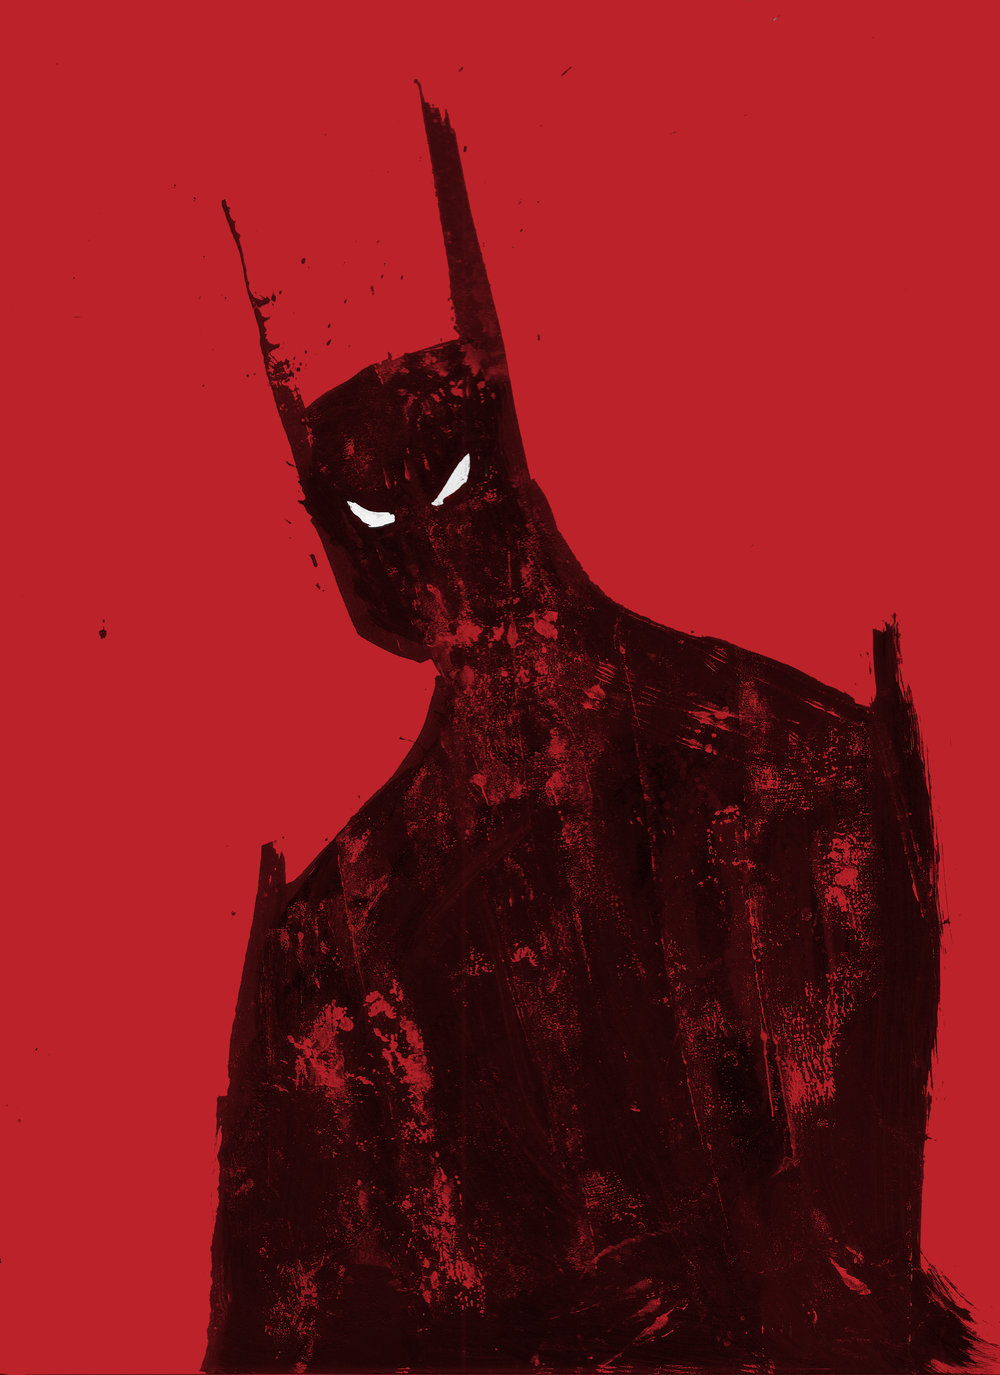 bat shadow red.jpg